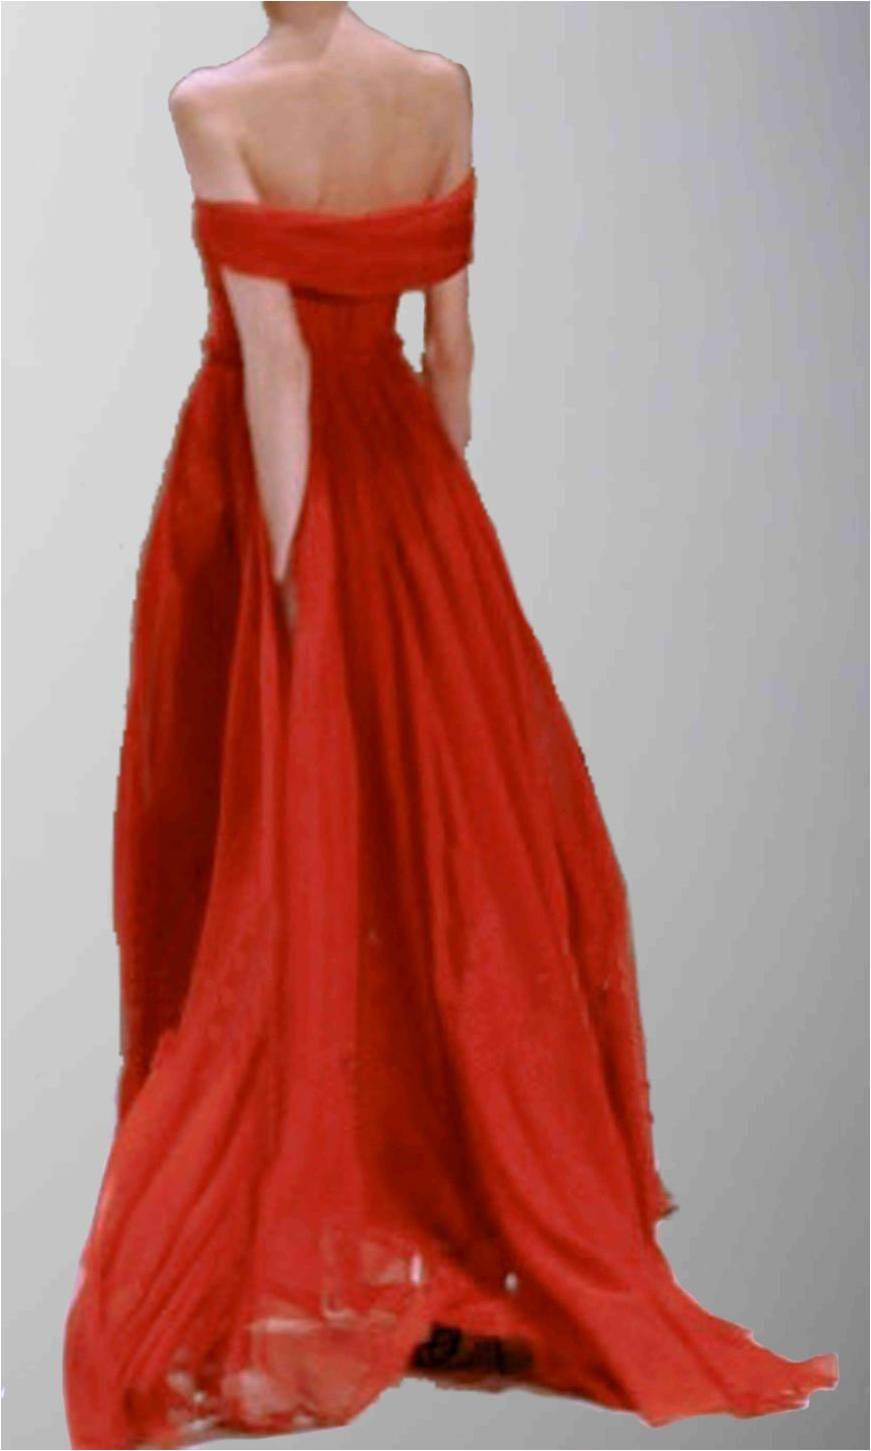 Boda - Flowing Floor Length Sexy Off Shoulder Red Formal Dress KSP277 [KSP277] - £98.00 : Cheap Prom Dresses Uk, Bridesmaid Dresses, 2014 Prom & Evening Dresses, Look for cheap elegant prom dresses 2014, cocktail gowns, or dresses for special occasions? kissprom